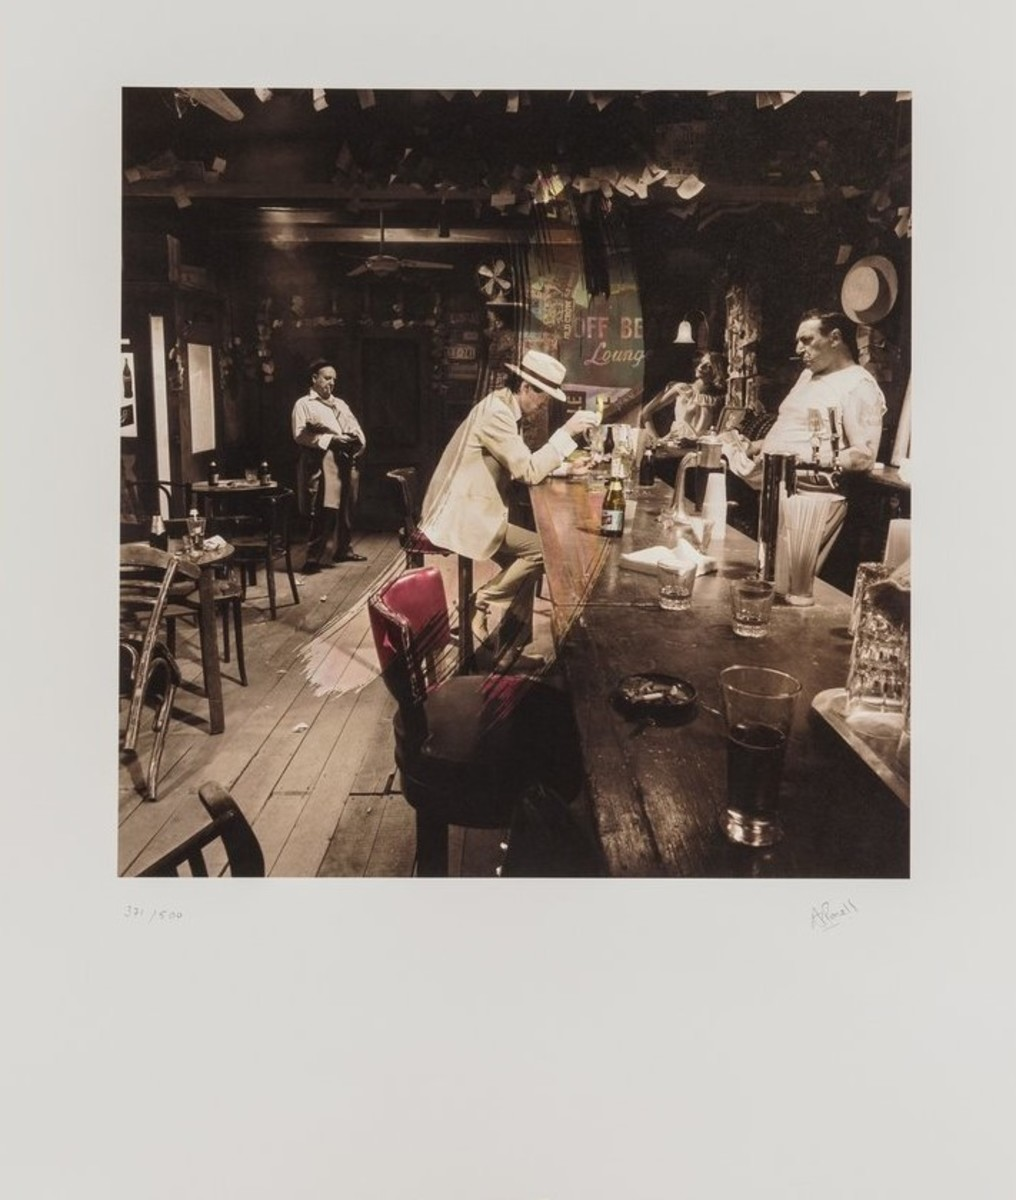 """Led Zeppelin """"In Through the Out Door"""" Limited Fine Art Print - Signed by Aubrey Powell"""